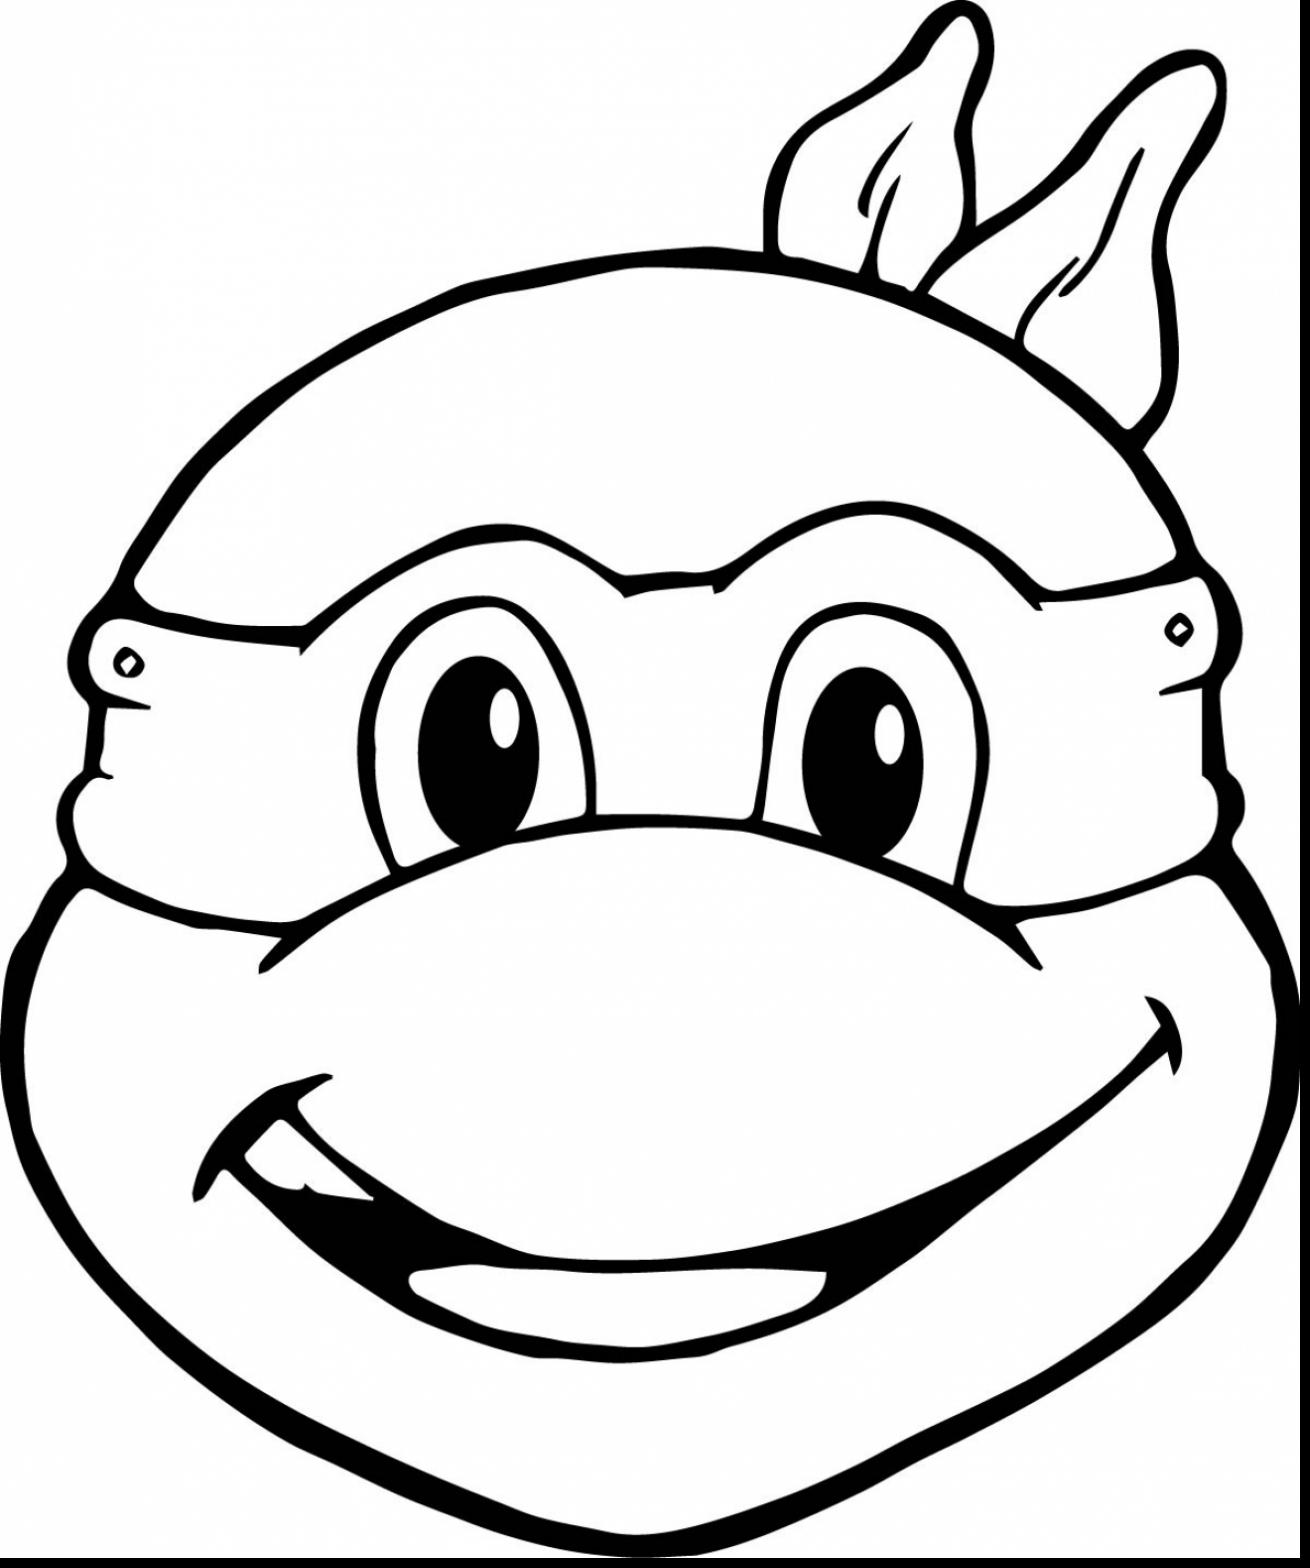 1310x1568 Teenage Ninja Turtles Coloring Pages Printout And Download